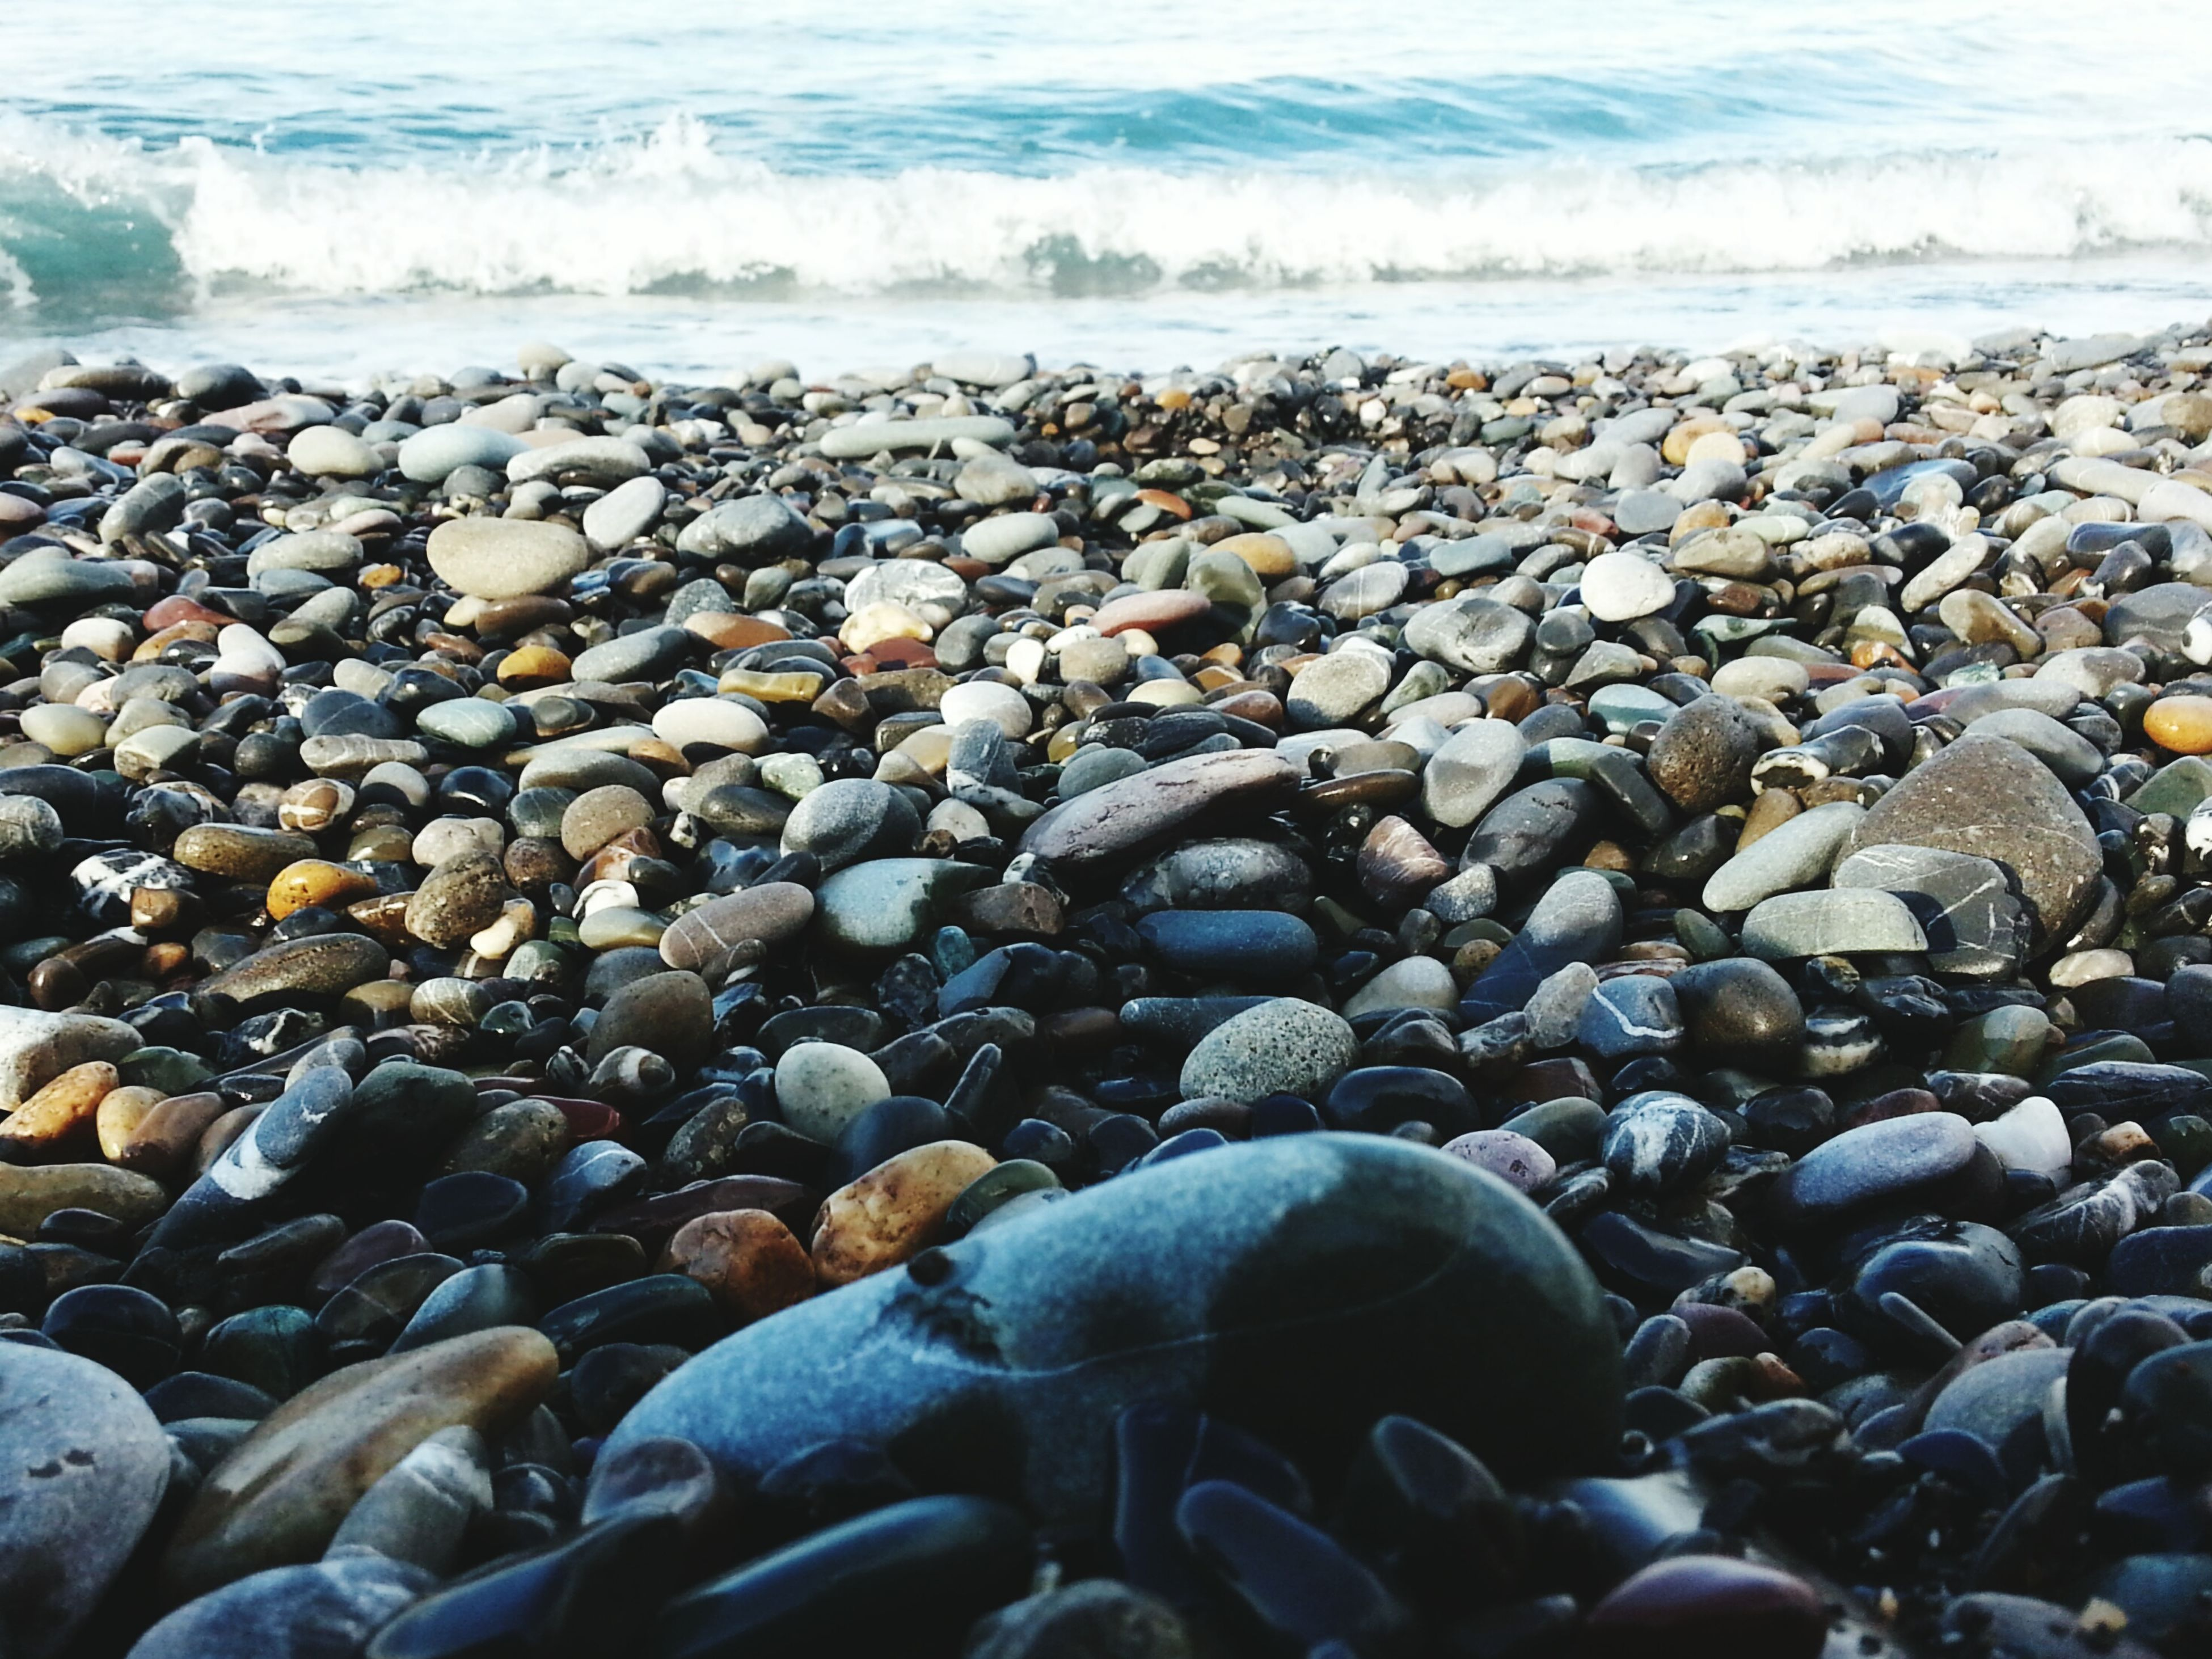 beach, sea, pebble, shore, water, stone - object, rock - object, nature, abundance, tranquility, large group of objects, sand, stone, wave, beauty in nature, horizon over water, scenics, tranquil scene, surf, surface level